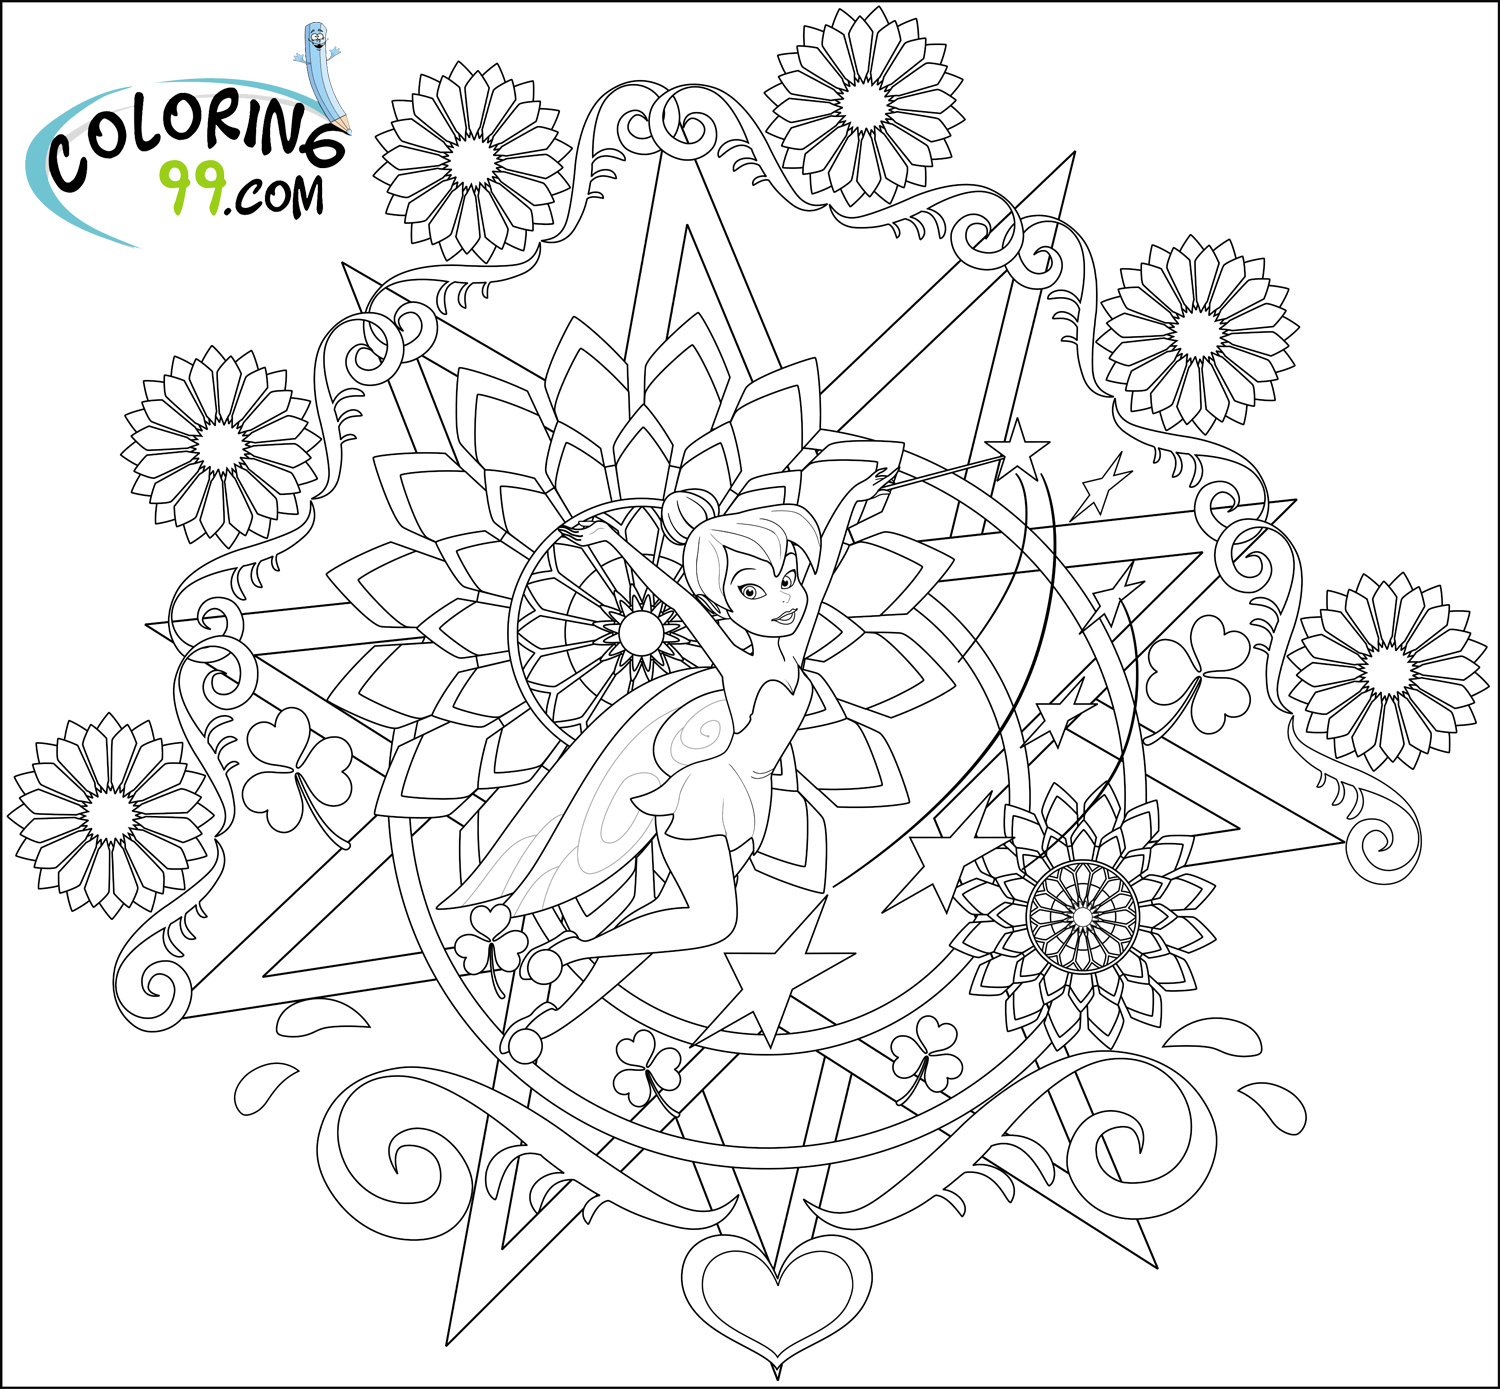 tinkerbell coloring book tinkerbell easy drawing at getdrawings free download coloring tinkerbell book